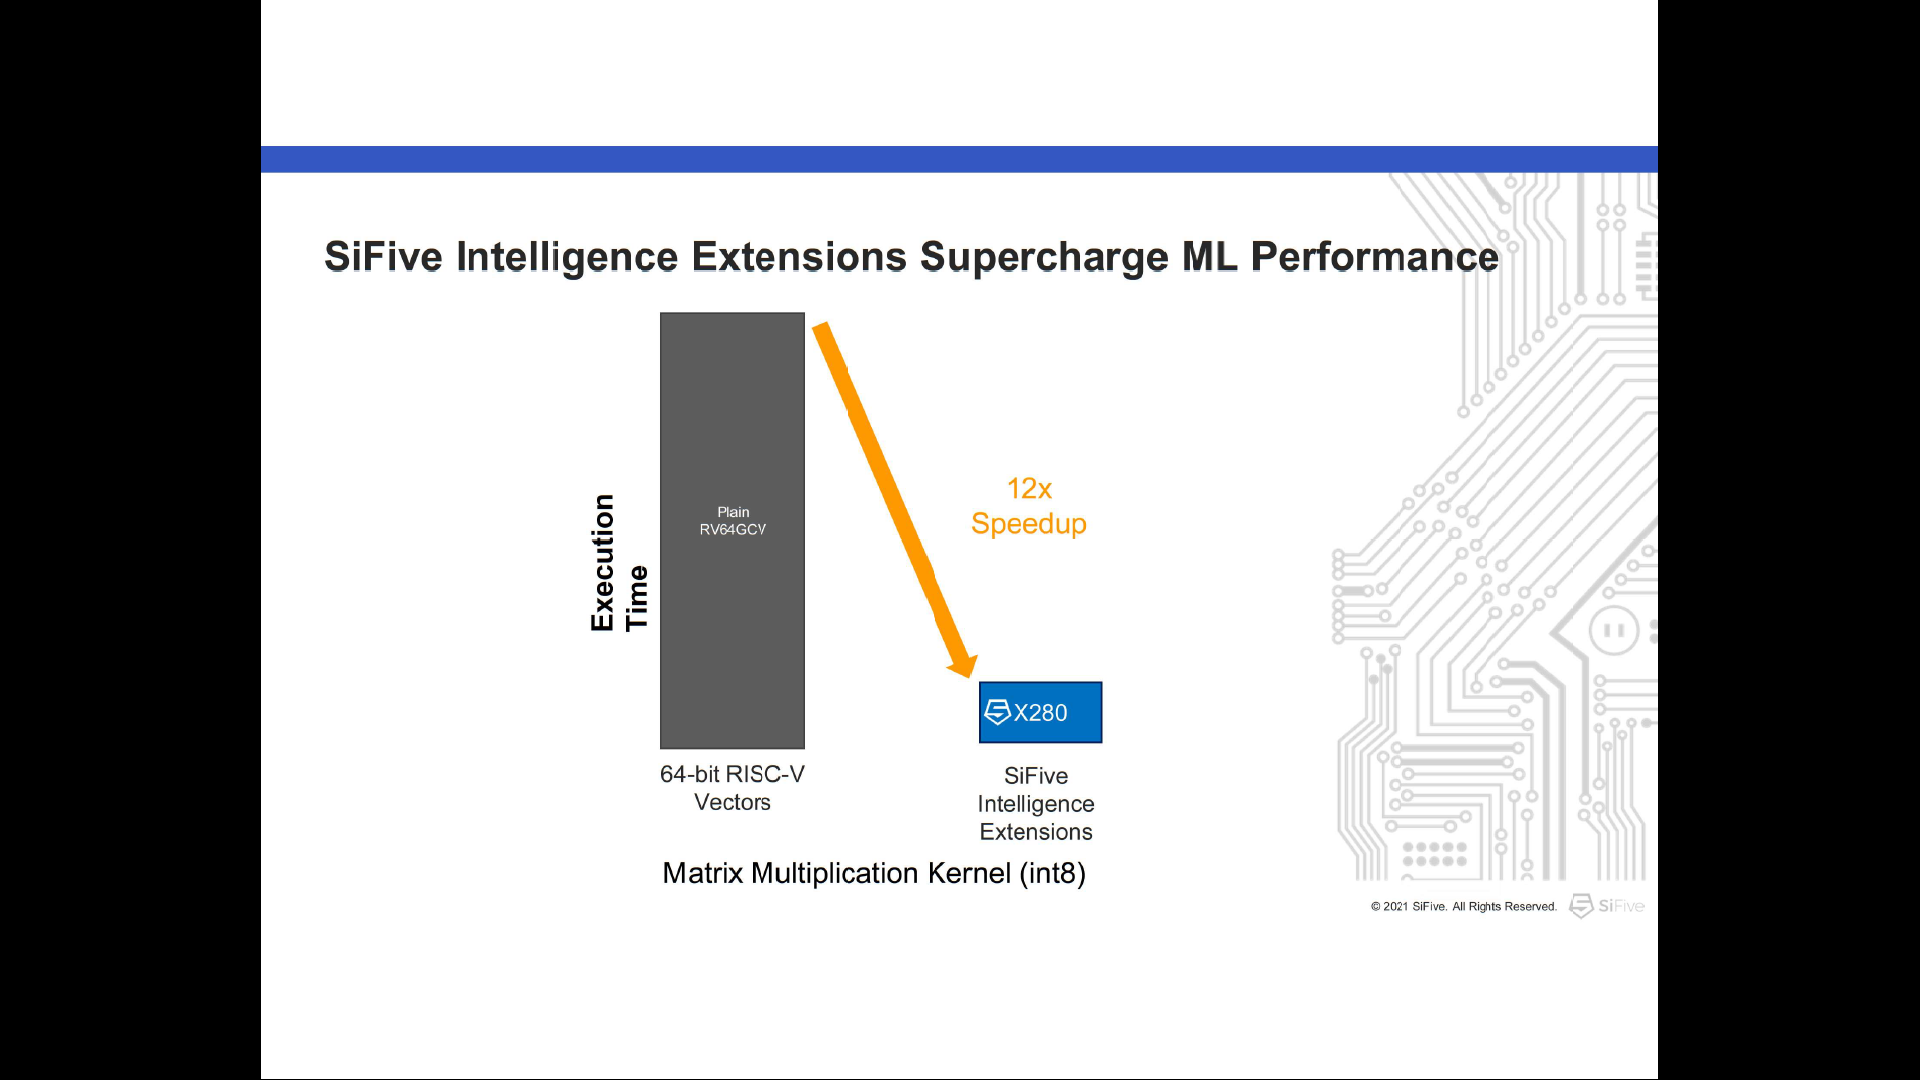 SuperCharge ML Performance